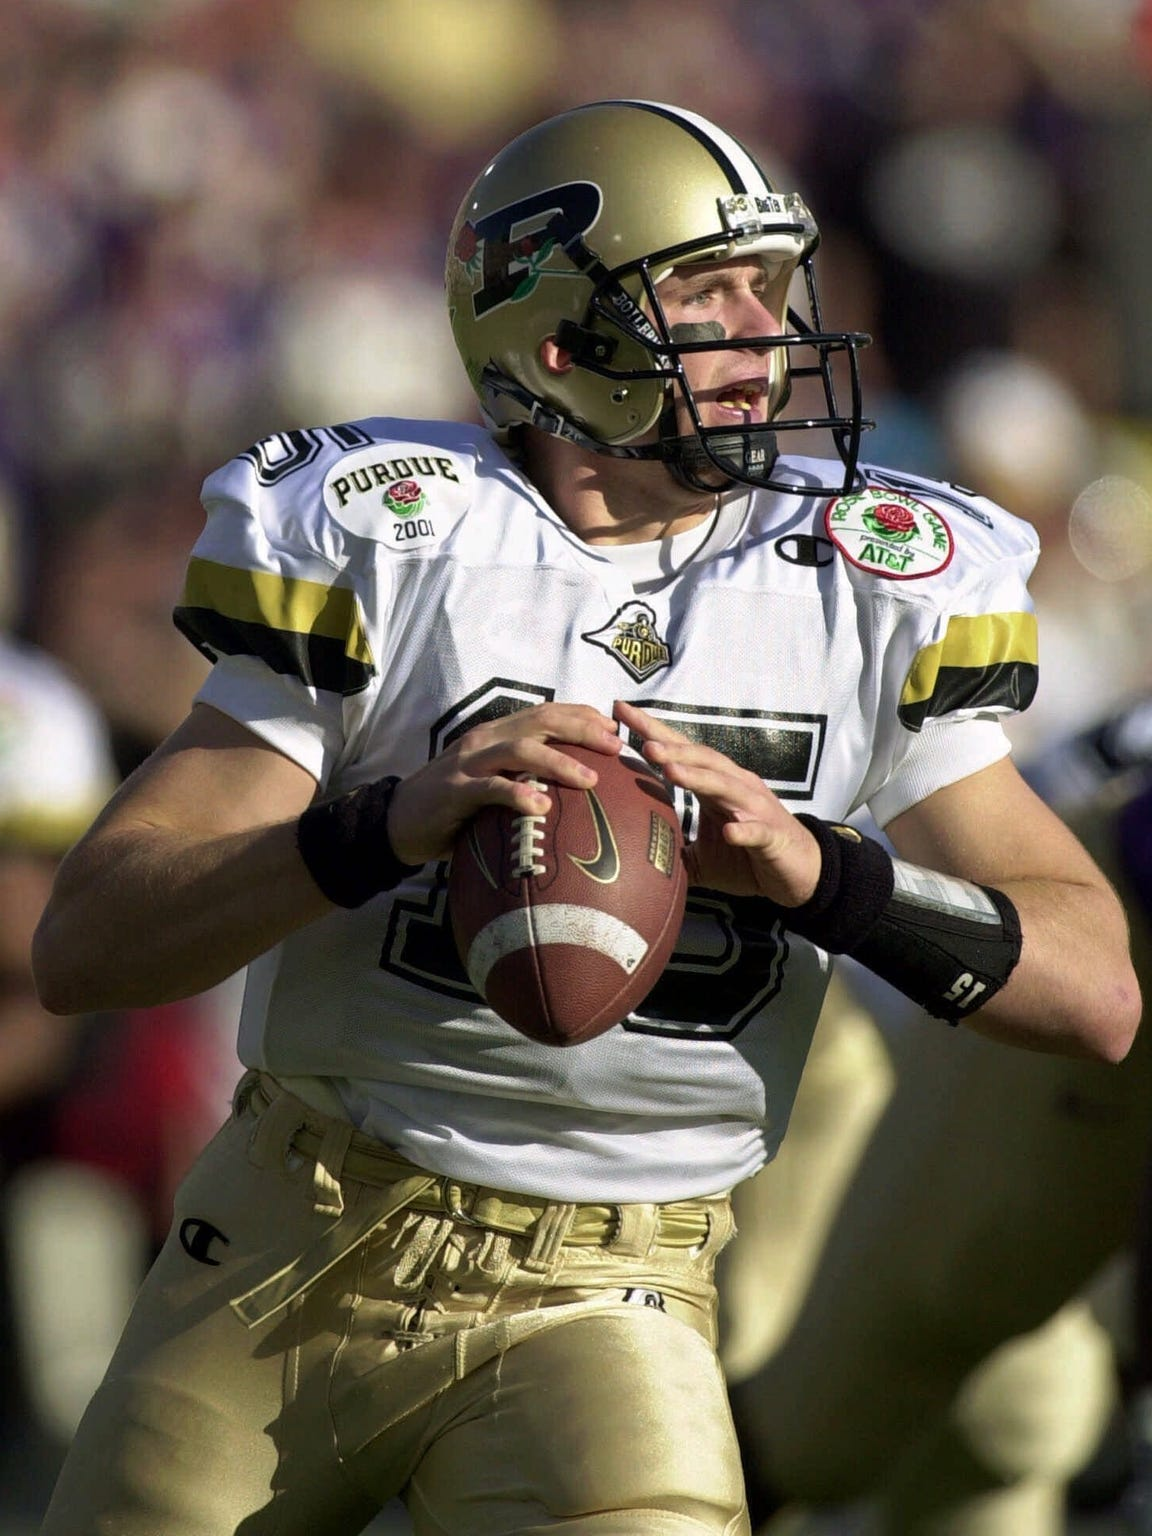 Former Purdue star Drew Brees